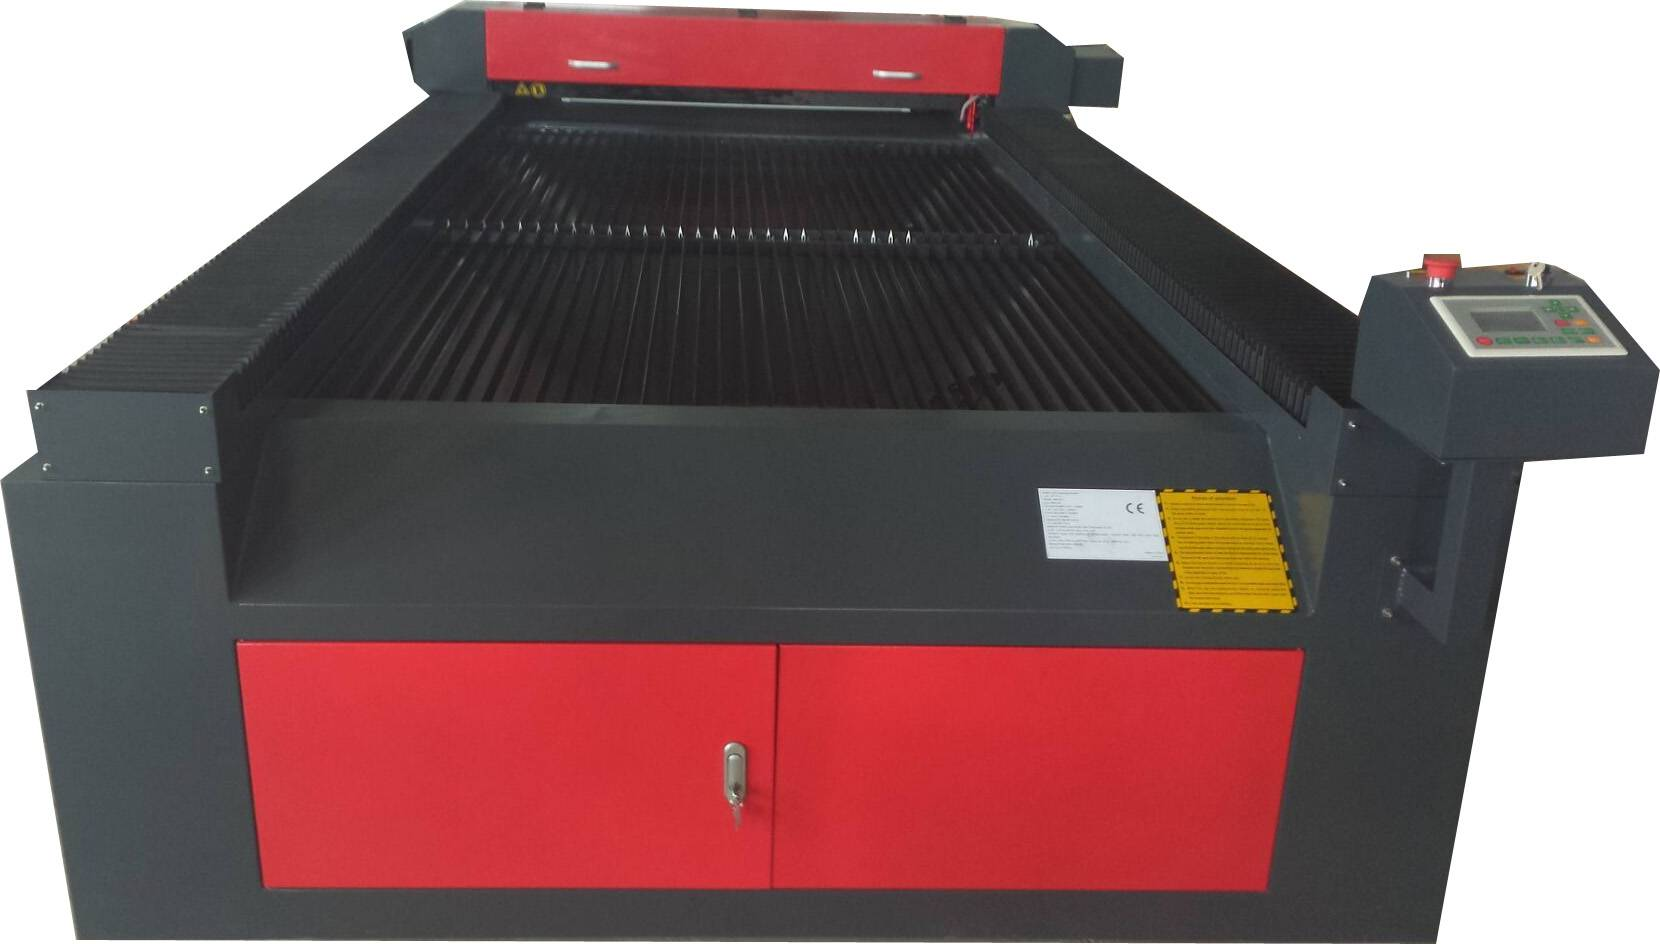 high configuration 1318 1325 1530 wood leather fabric laser cutting machine price 100w 130w 150w